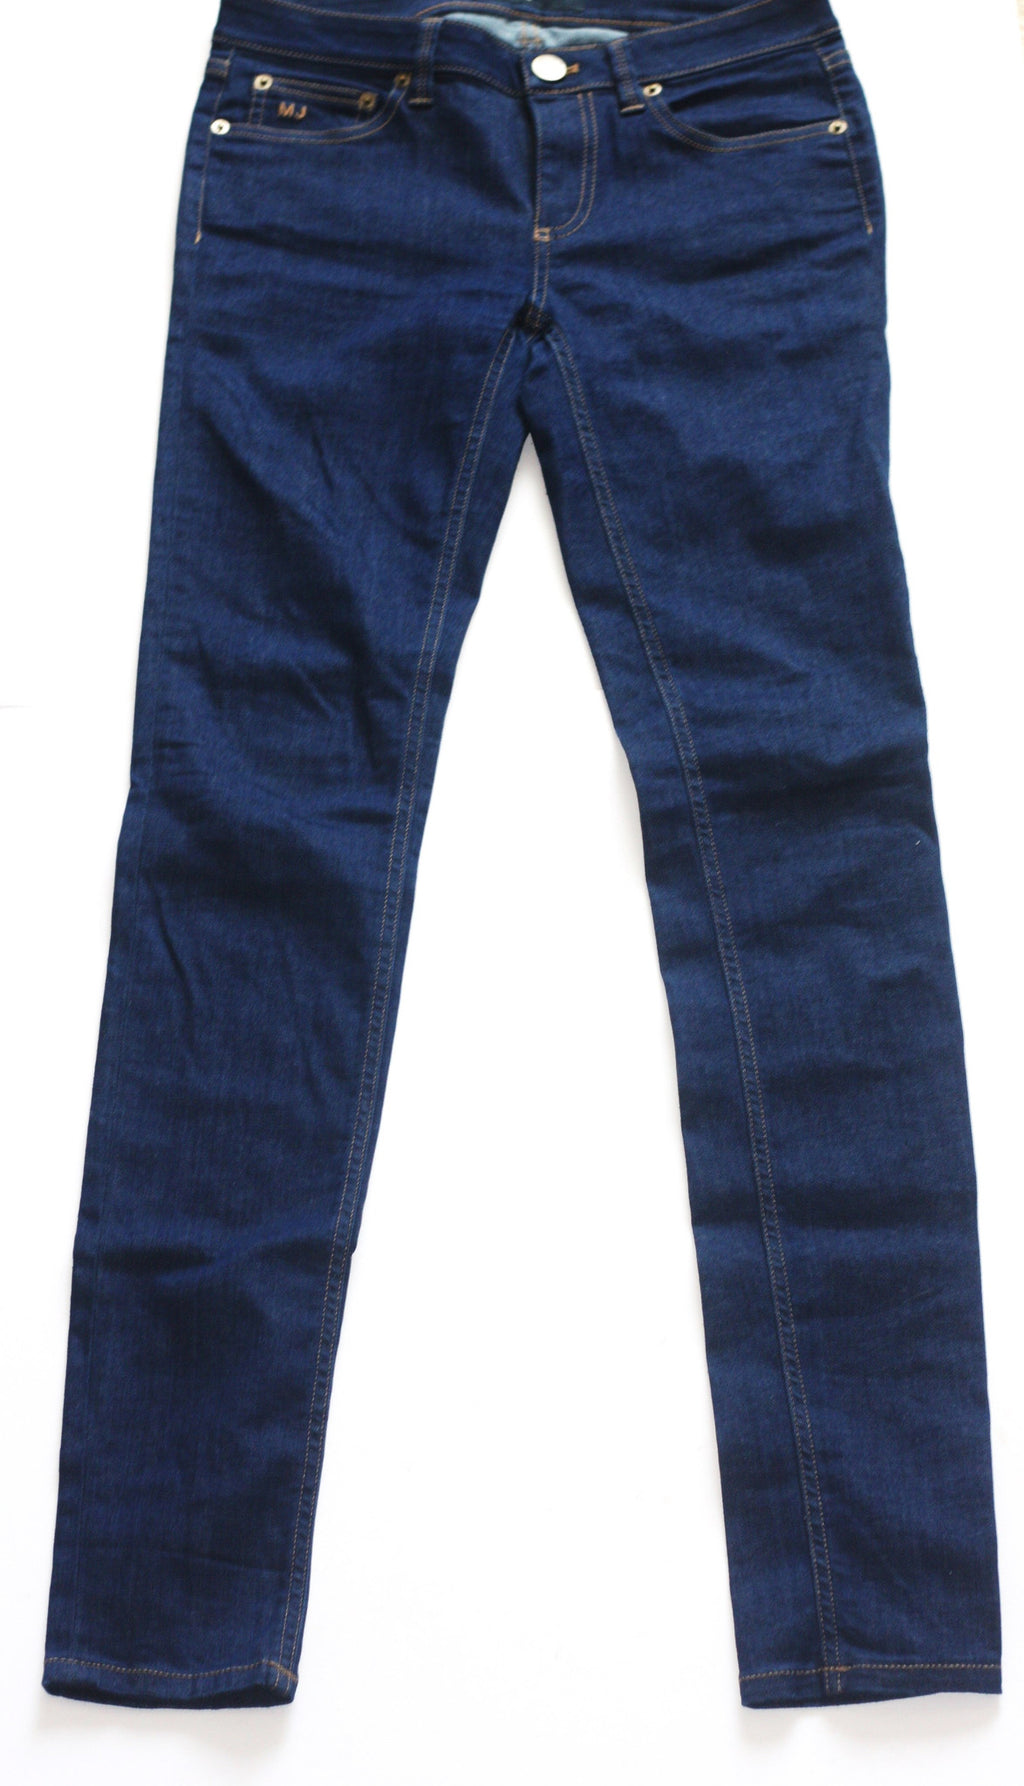 Marc By Marc Jacob Dark Wash Skinny Jeans - Joyce's Closet  - 1